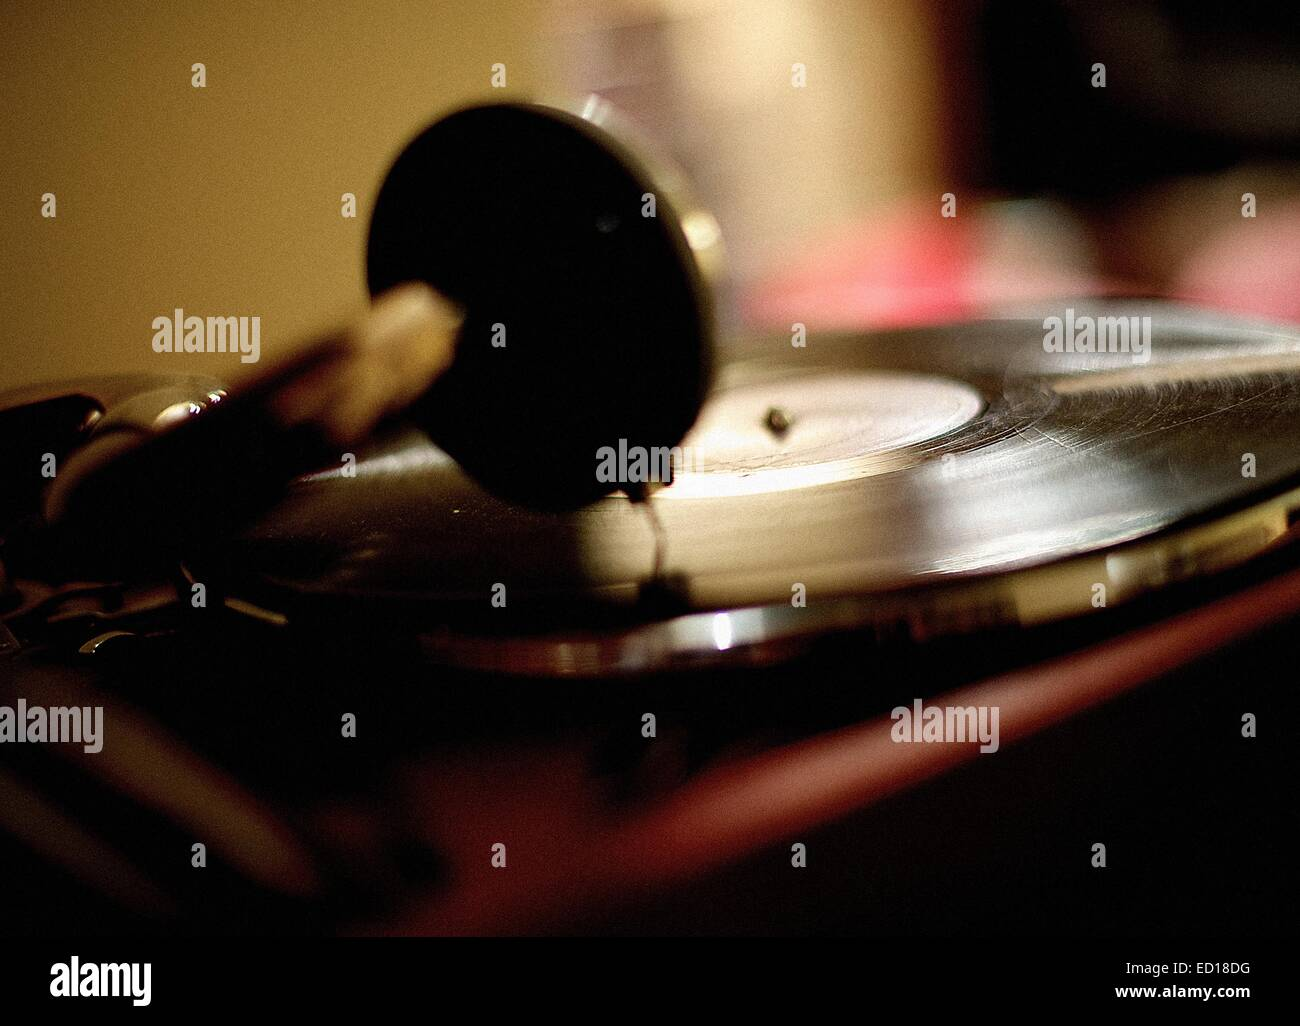 Horizontal shot of the vintage vinyl record player playing scratched LP. - Stock Image